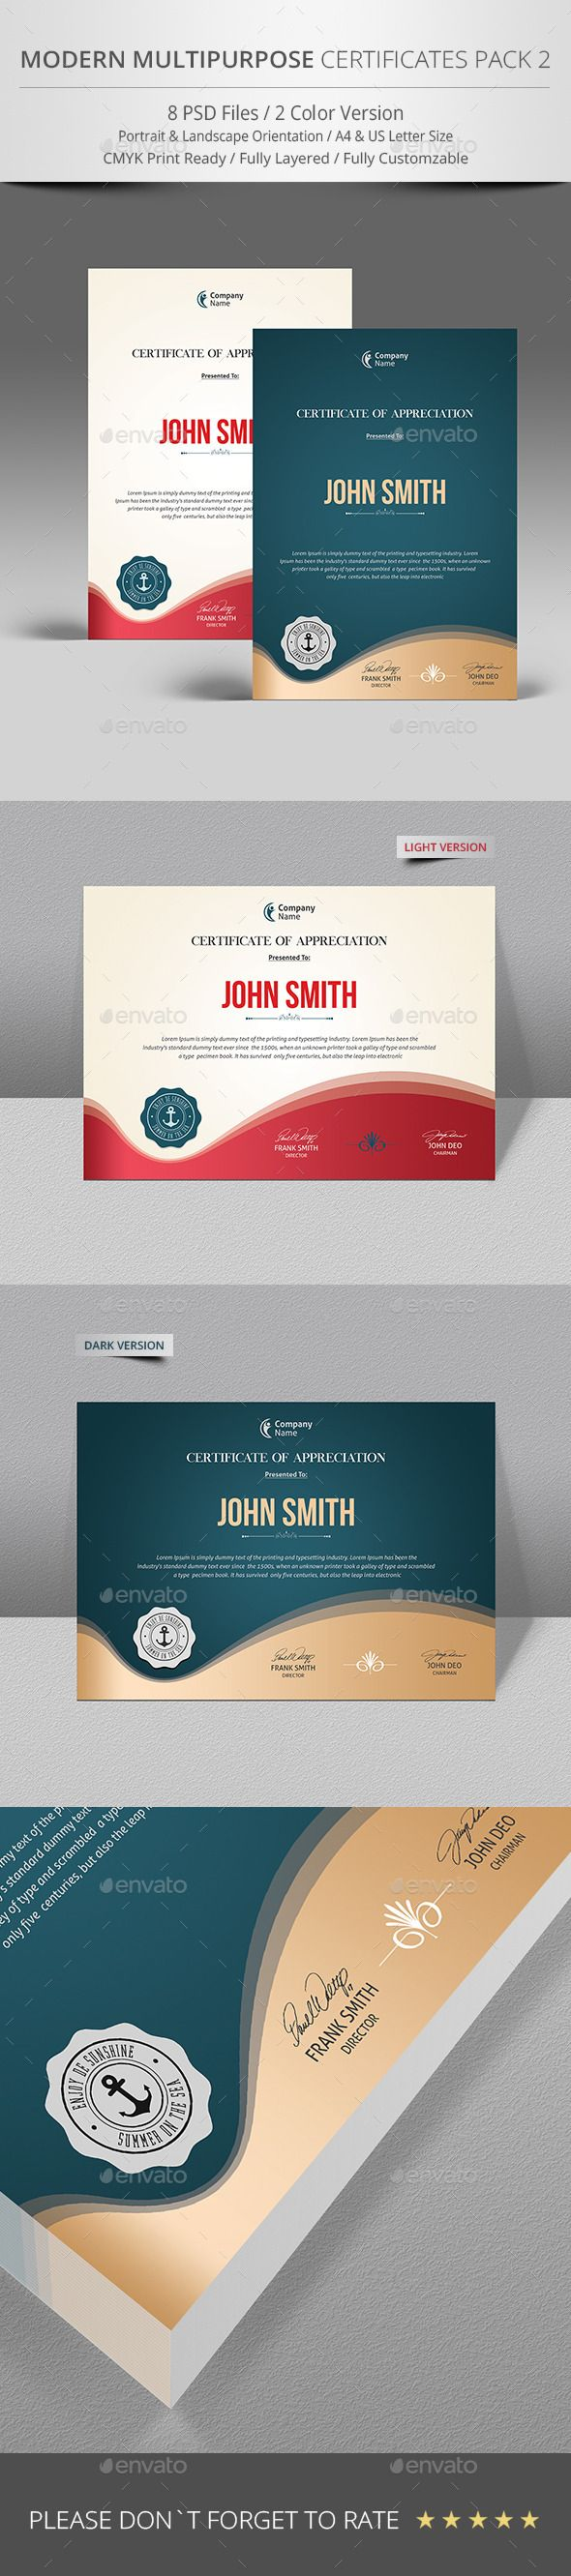 Certificate Design - Certificate Template Designed for the corporate users. Great modern certificate template for awards and certificate of appreciation. http://graphicriver.net/item/certificate/9691722?ref=themedevisers